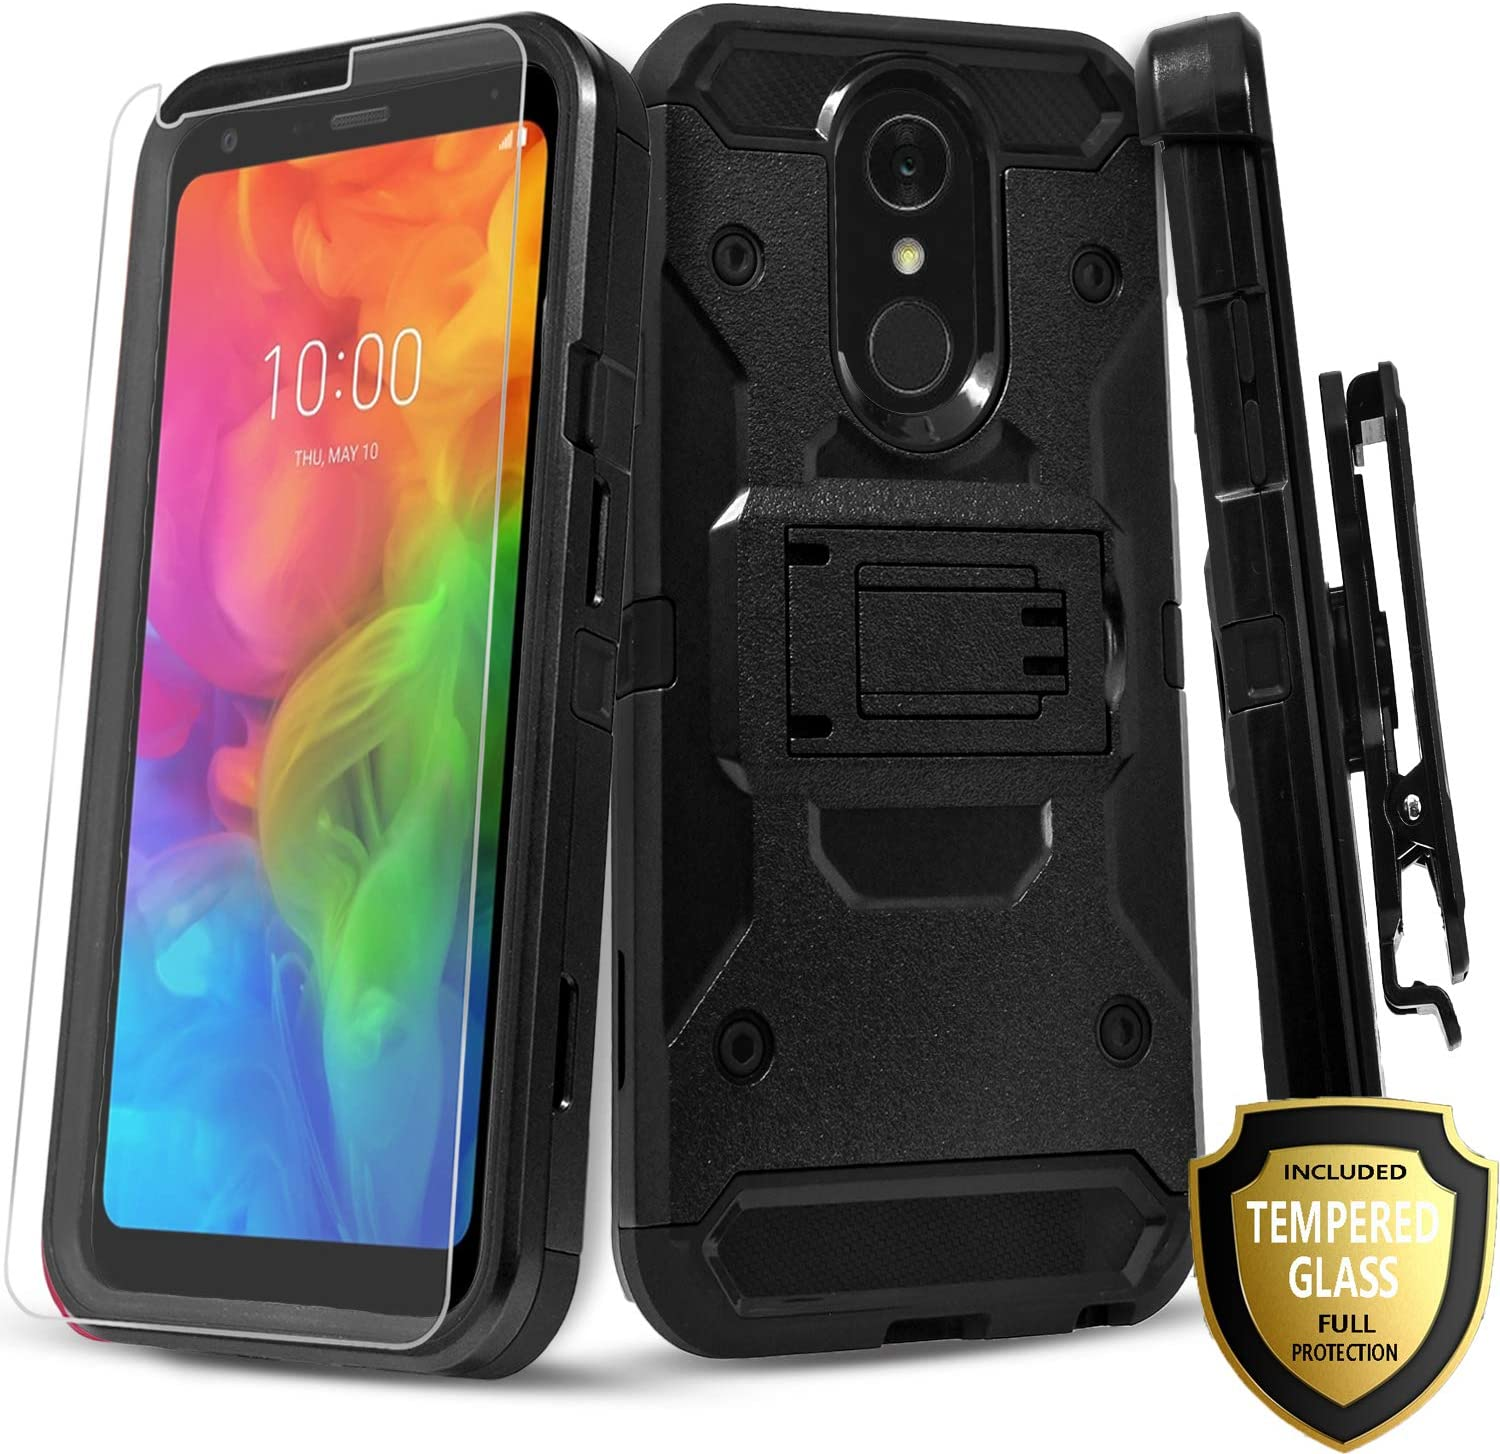 LG Stylo 4 Phone Case, LG Stylo 4 Plus + Case, With [Tempered Glass Screen Protector] Full Cover Heavy Duty Dual Layers Phone Cover with Kickstand and Locking Belt Clip Holster-Black